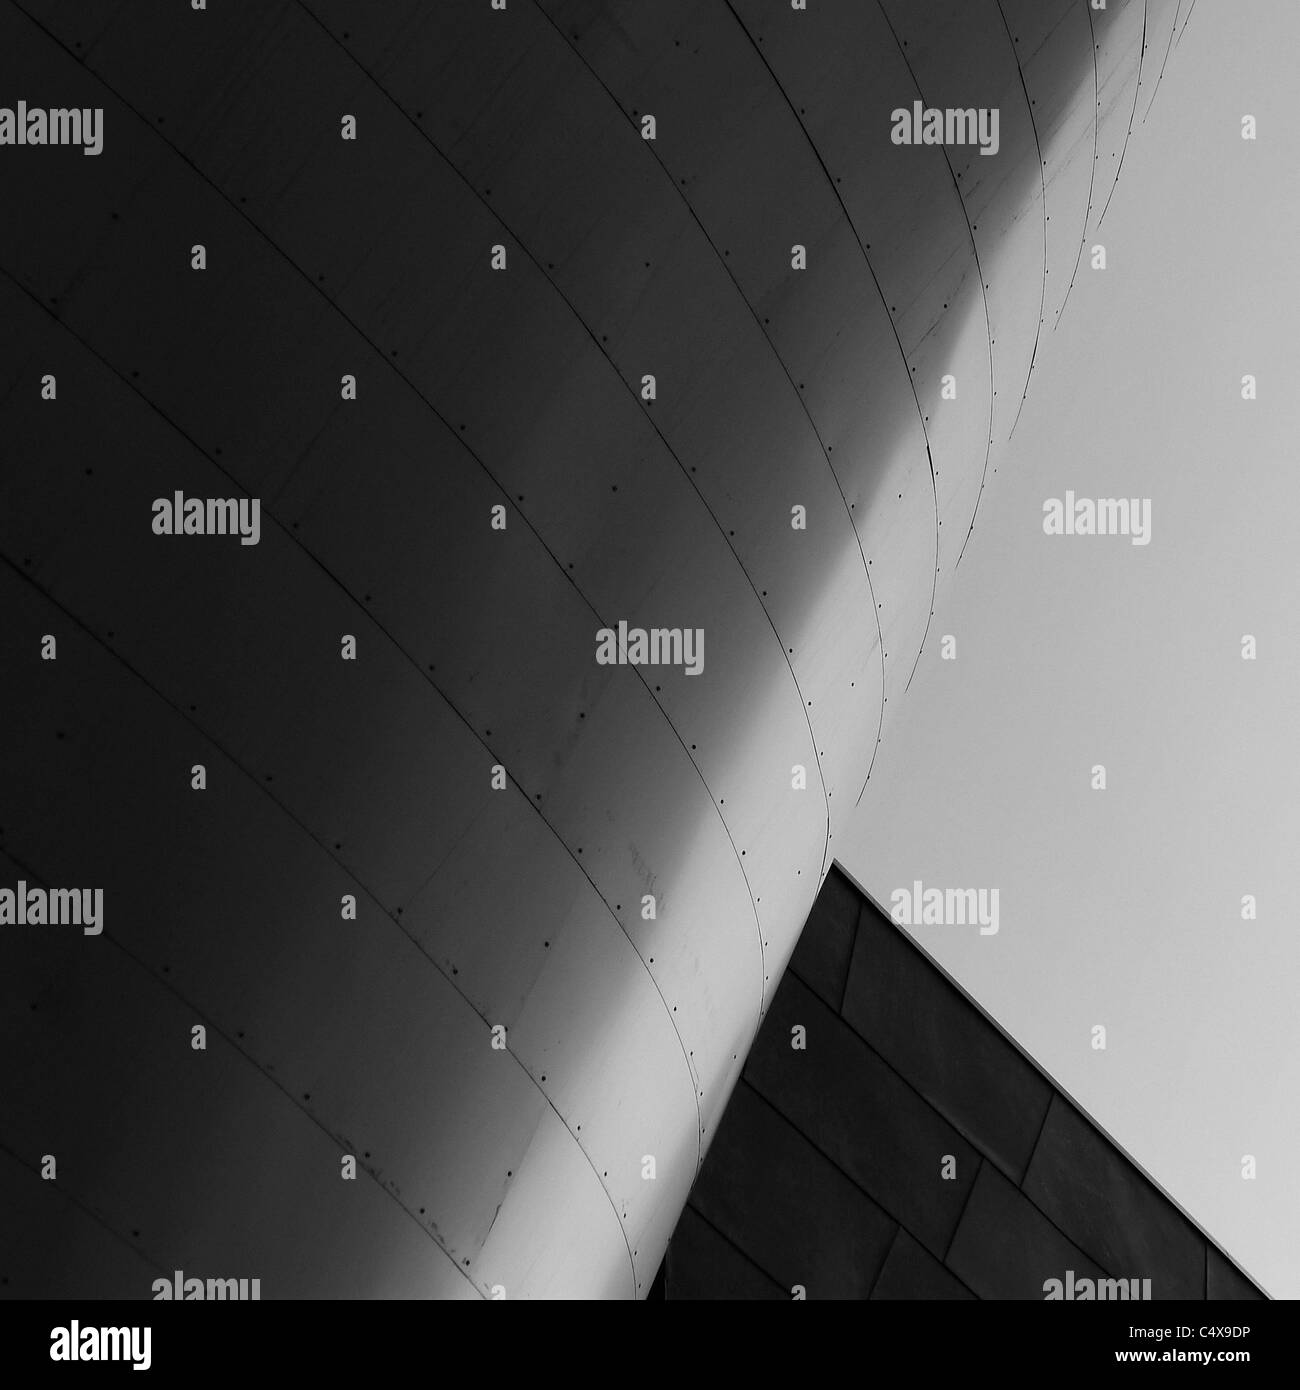 Contemporary Steel Architectural Detail. - Stock Image